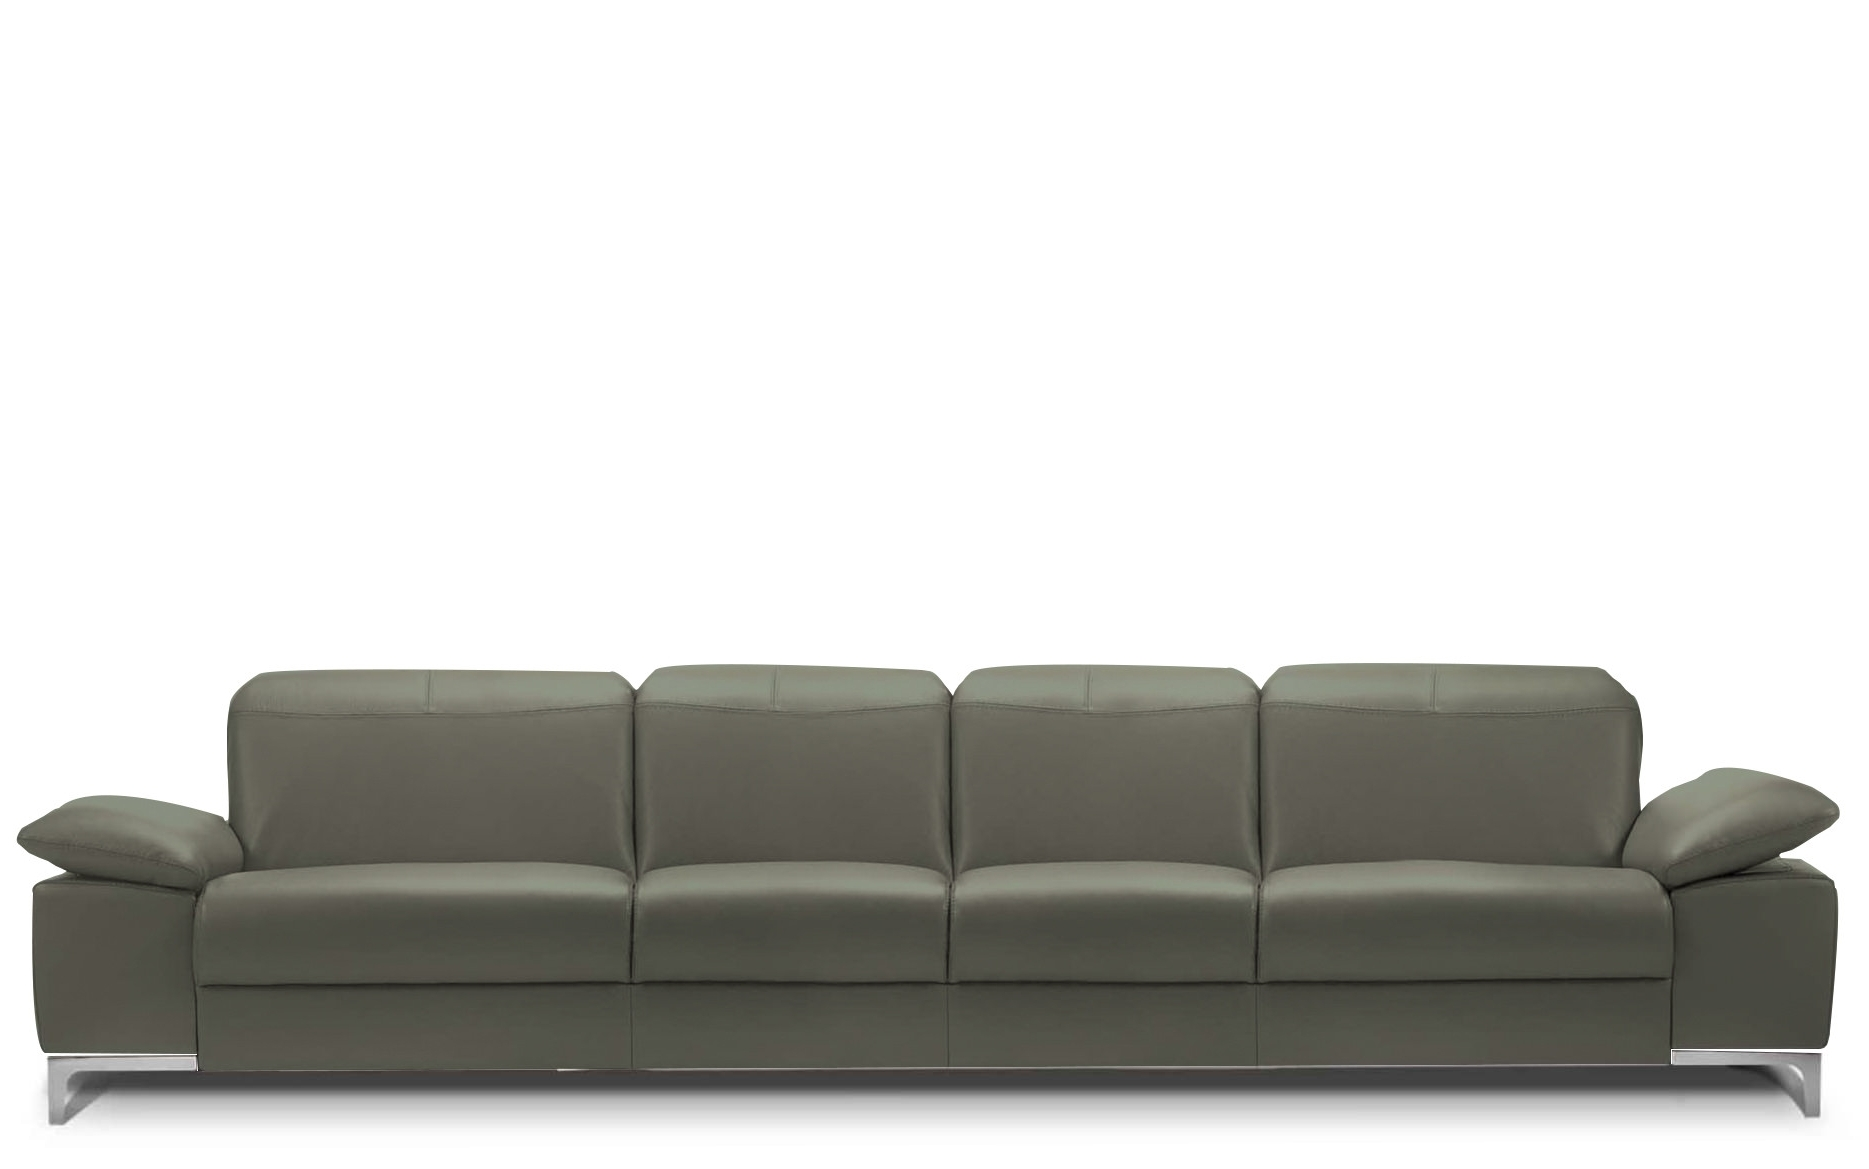 Buy At Kontenta With 4 Seat Leather Sofas (View 2 of 20)